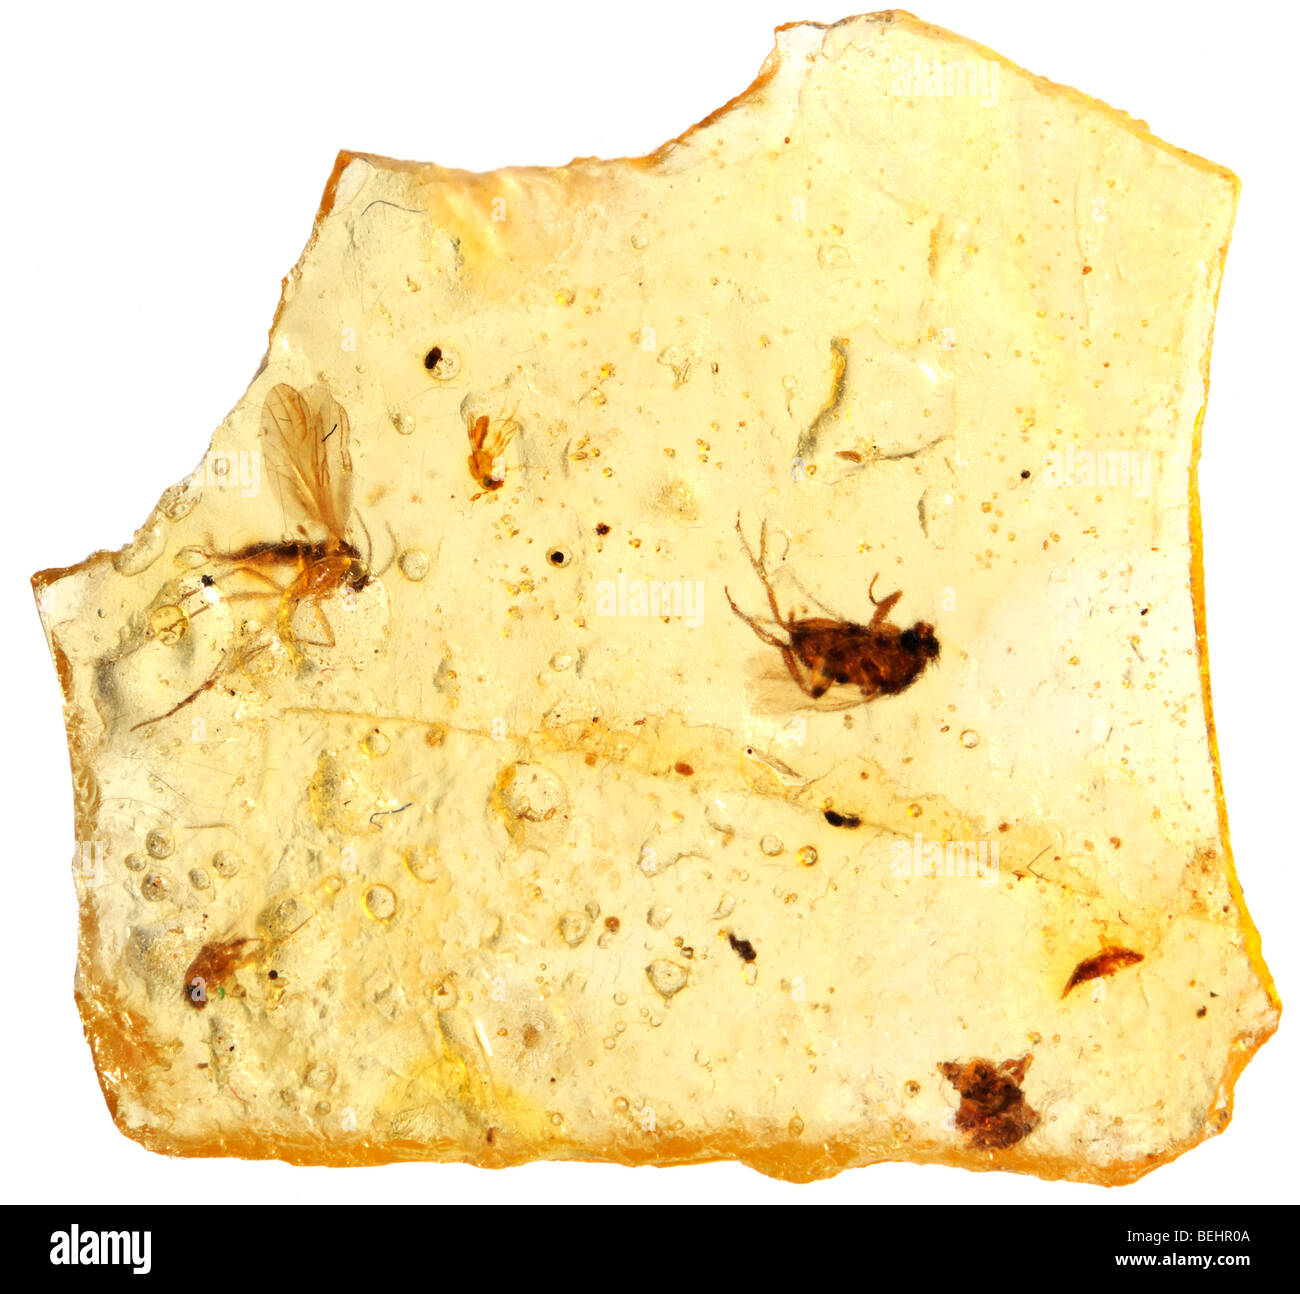 Insects preserved in Madagascan Copal - young amber - Stock Image